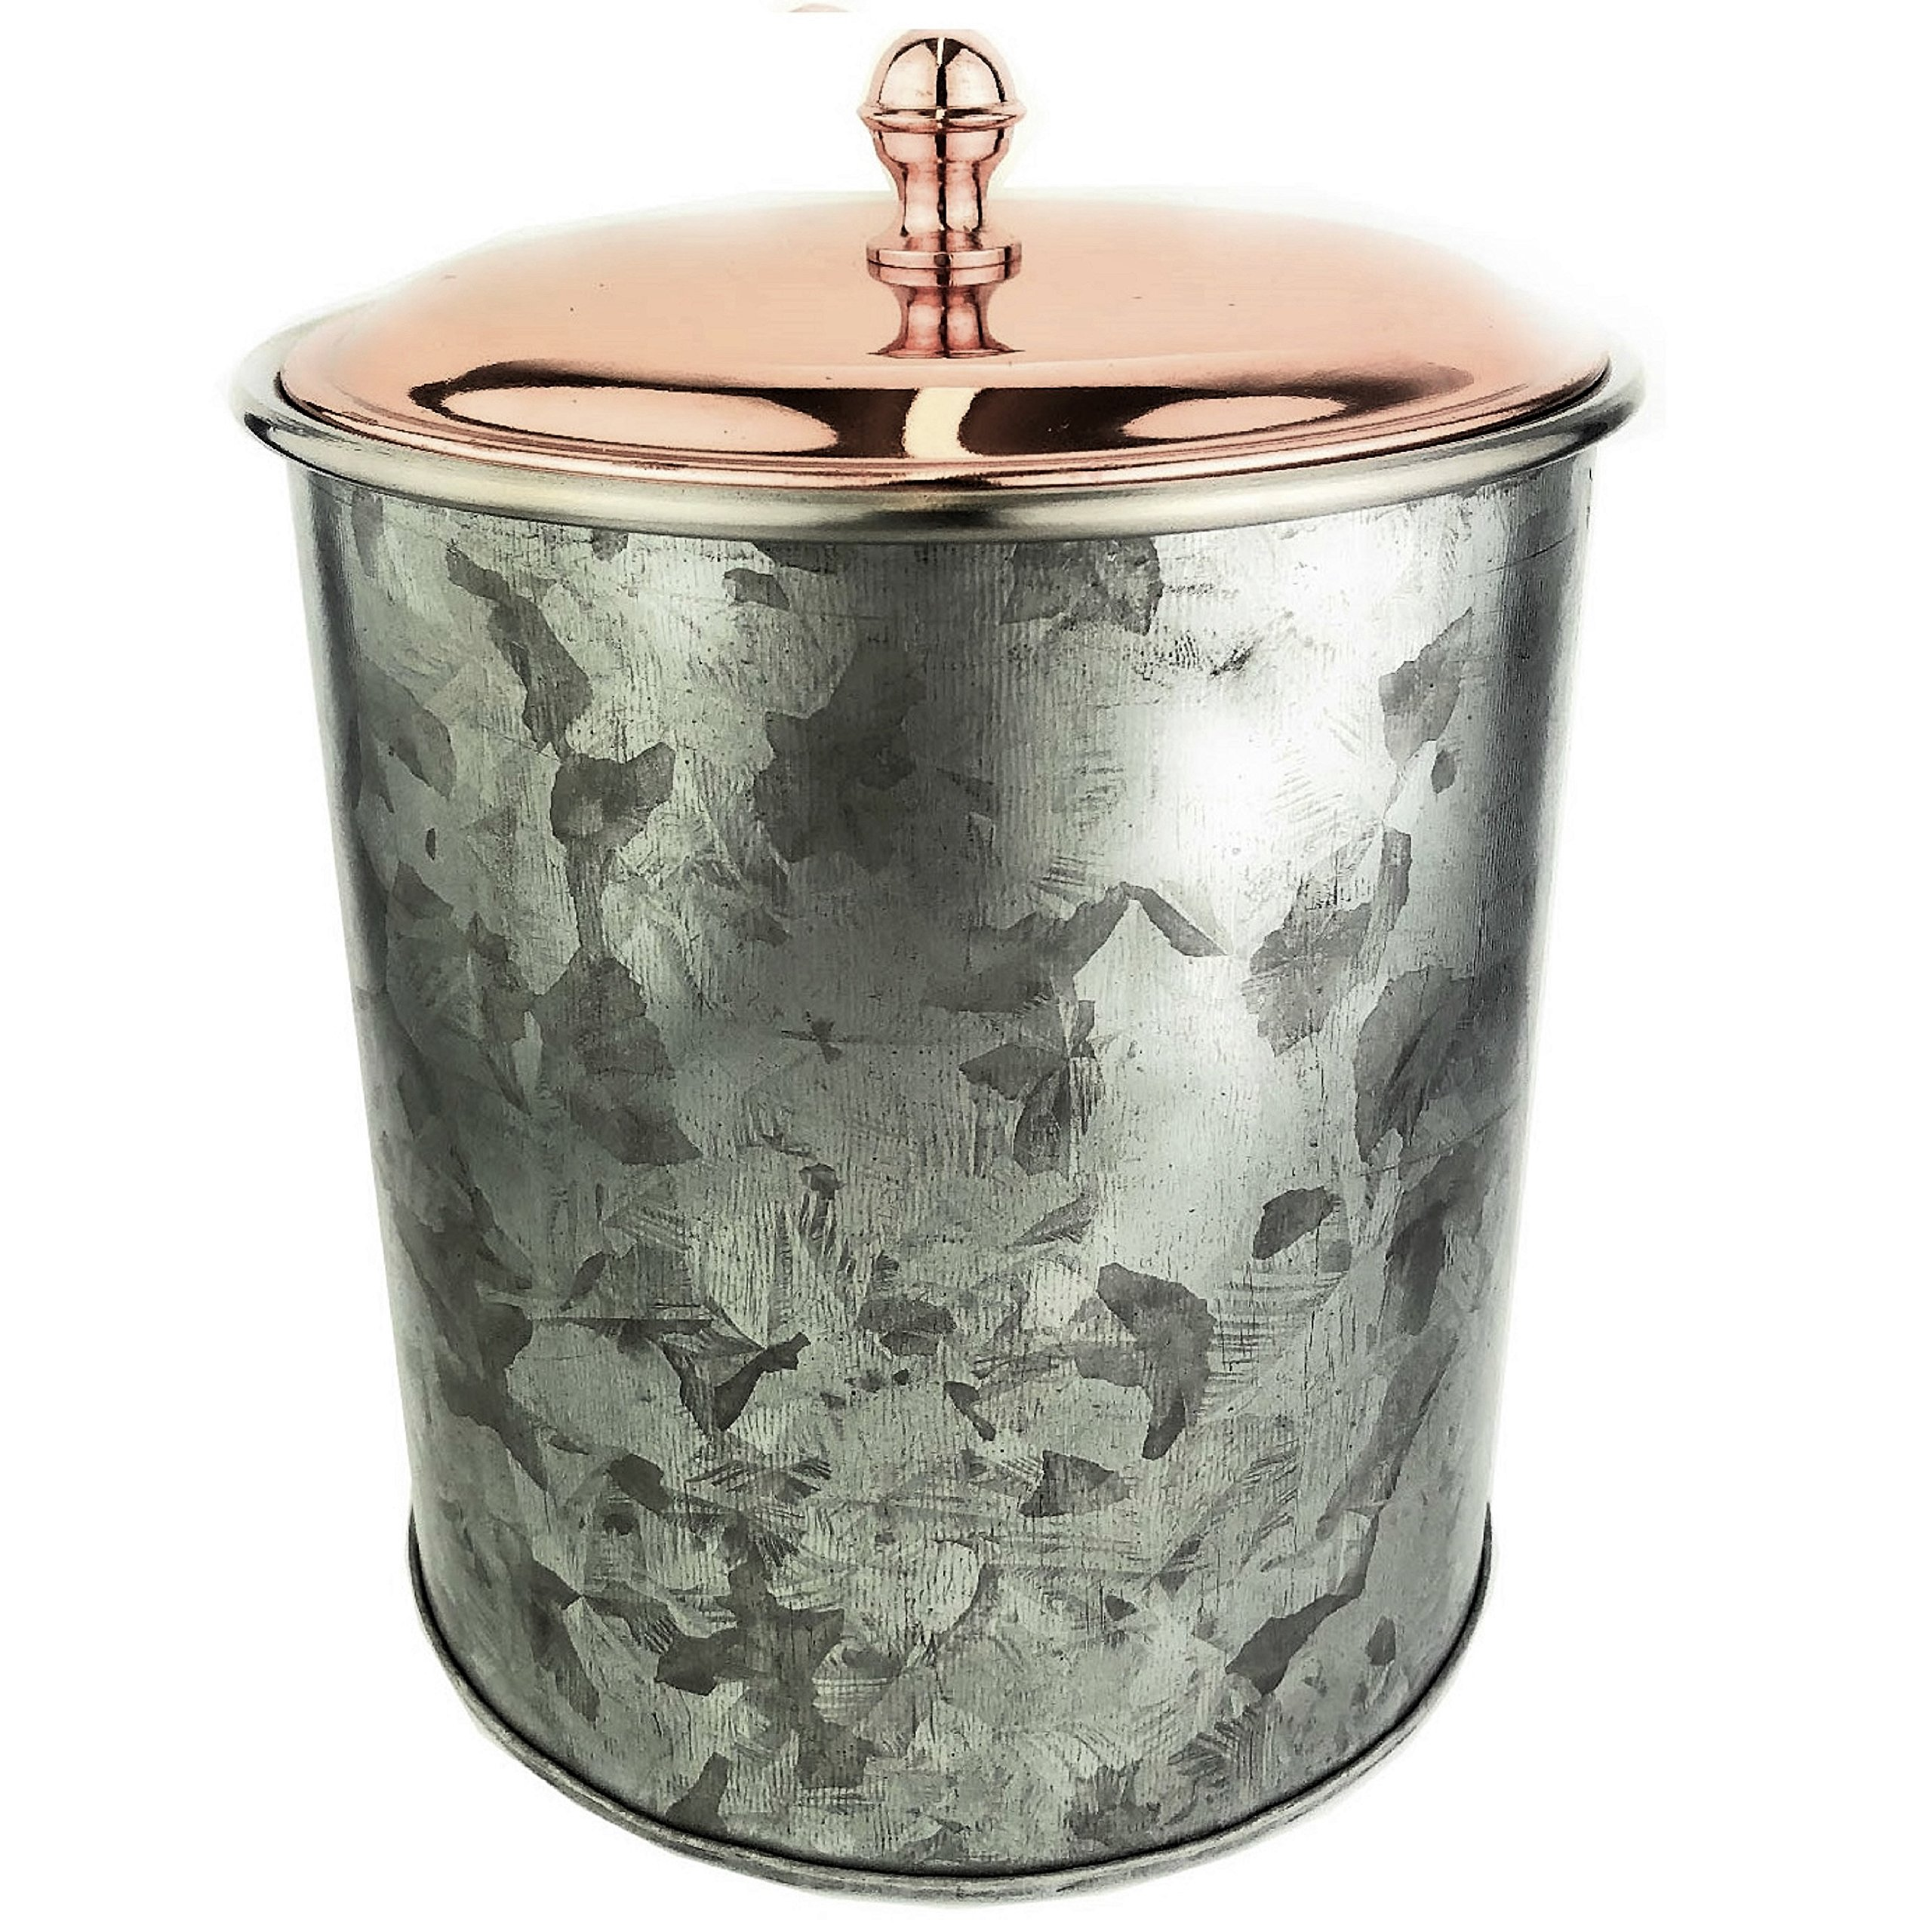 Galrose ICE BUCKET WINE CHAMPAGNE BOTTLE COOLER - Double Wall Heavy Duty Galvanized Iron/ Stainless Steel Lined Drinks Chiller with Rose Gold finished Lid Unique Industrial Chic Look Great Gift Idea by Galrose Dezigns